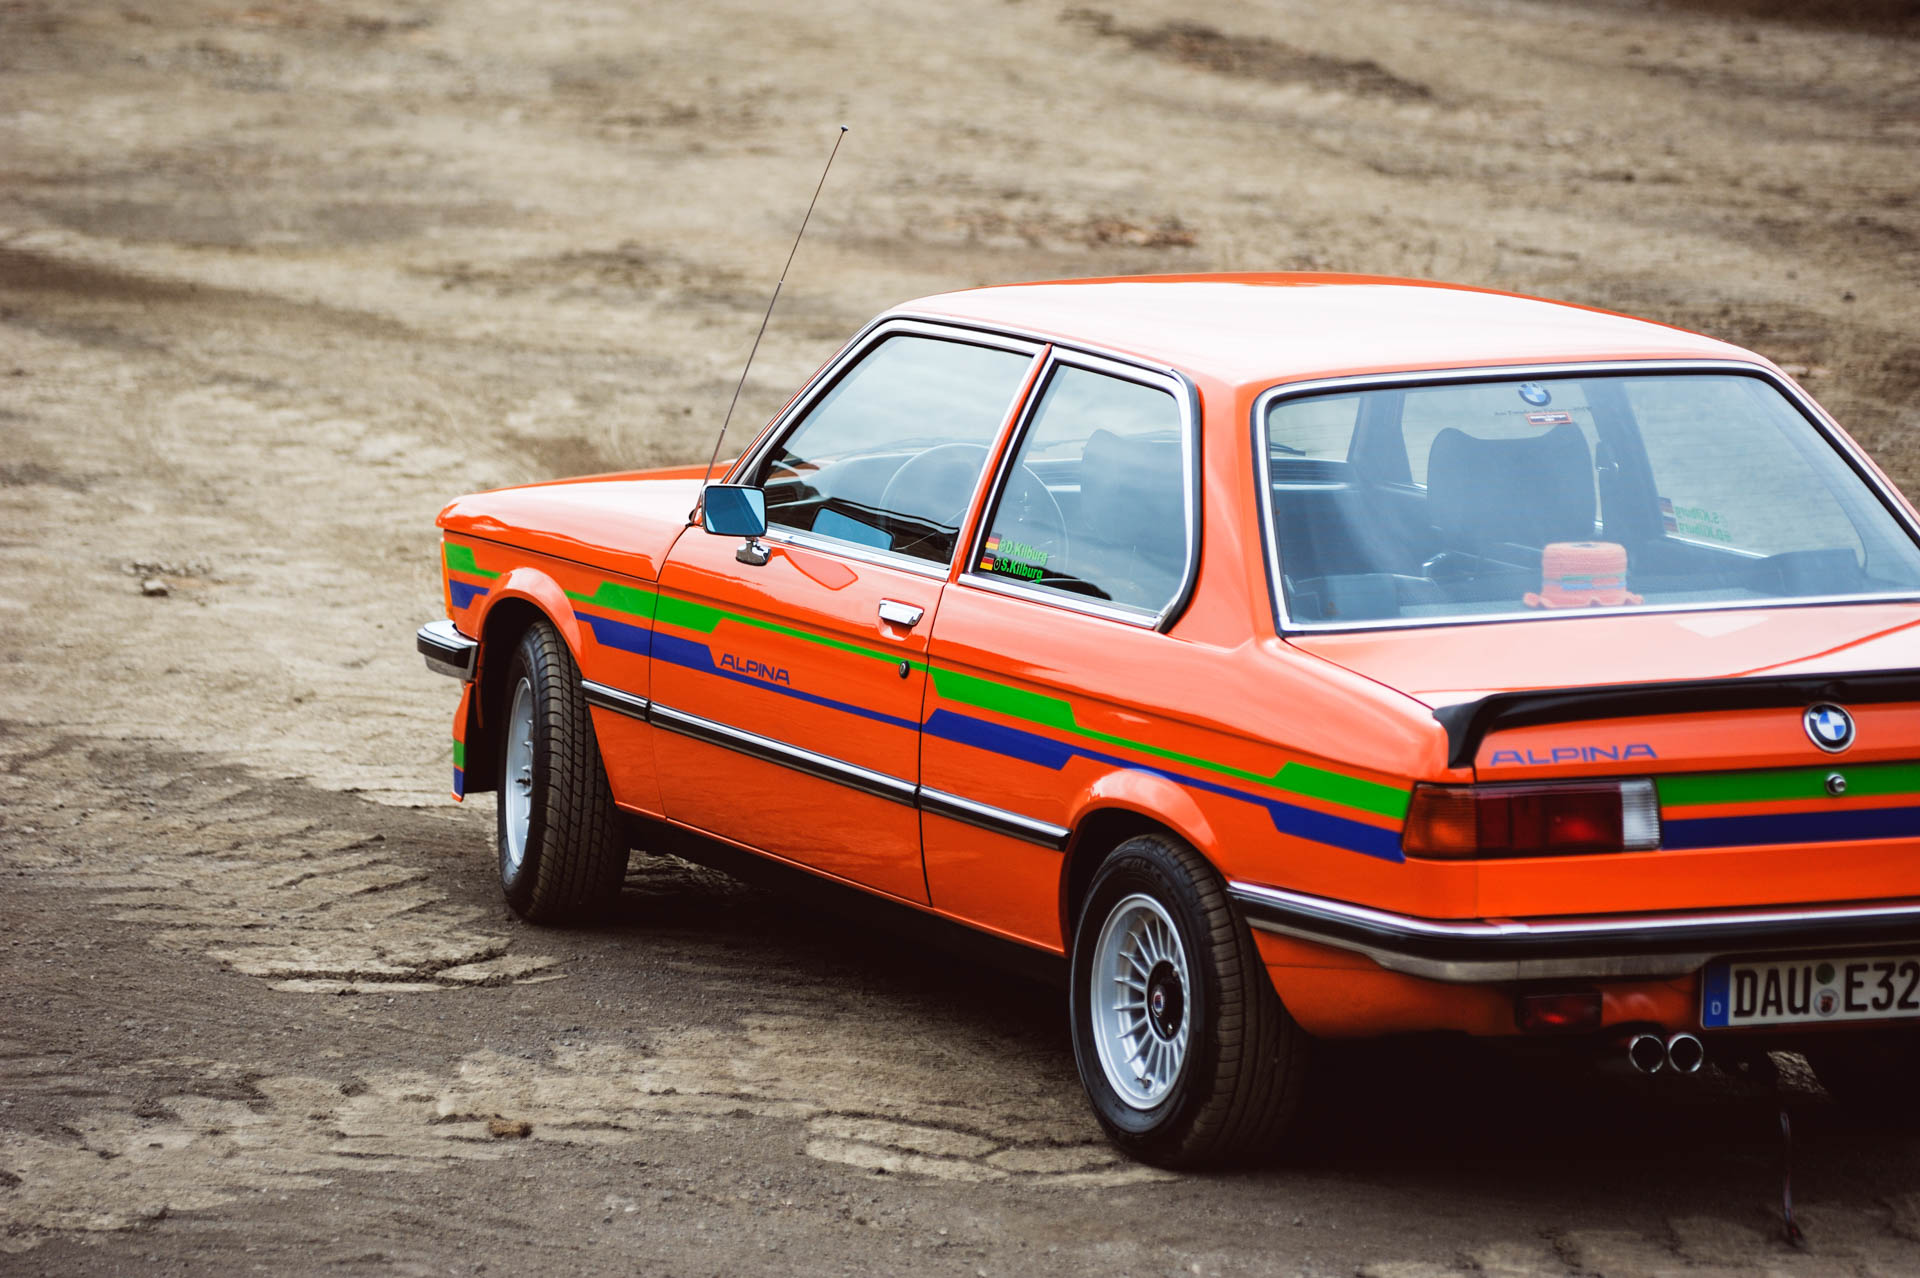 e21-bmw-3er-alpina-youngtimer-8